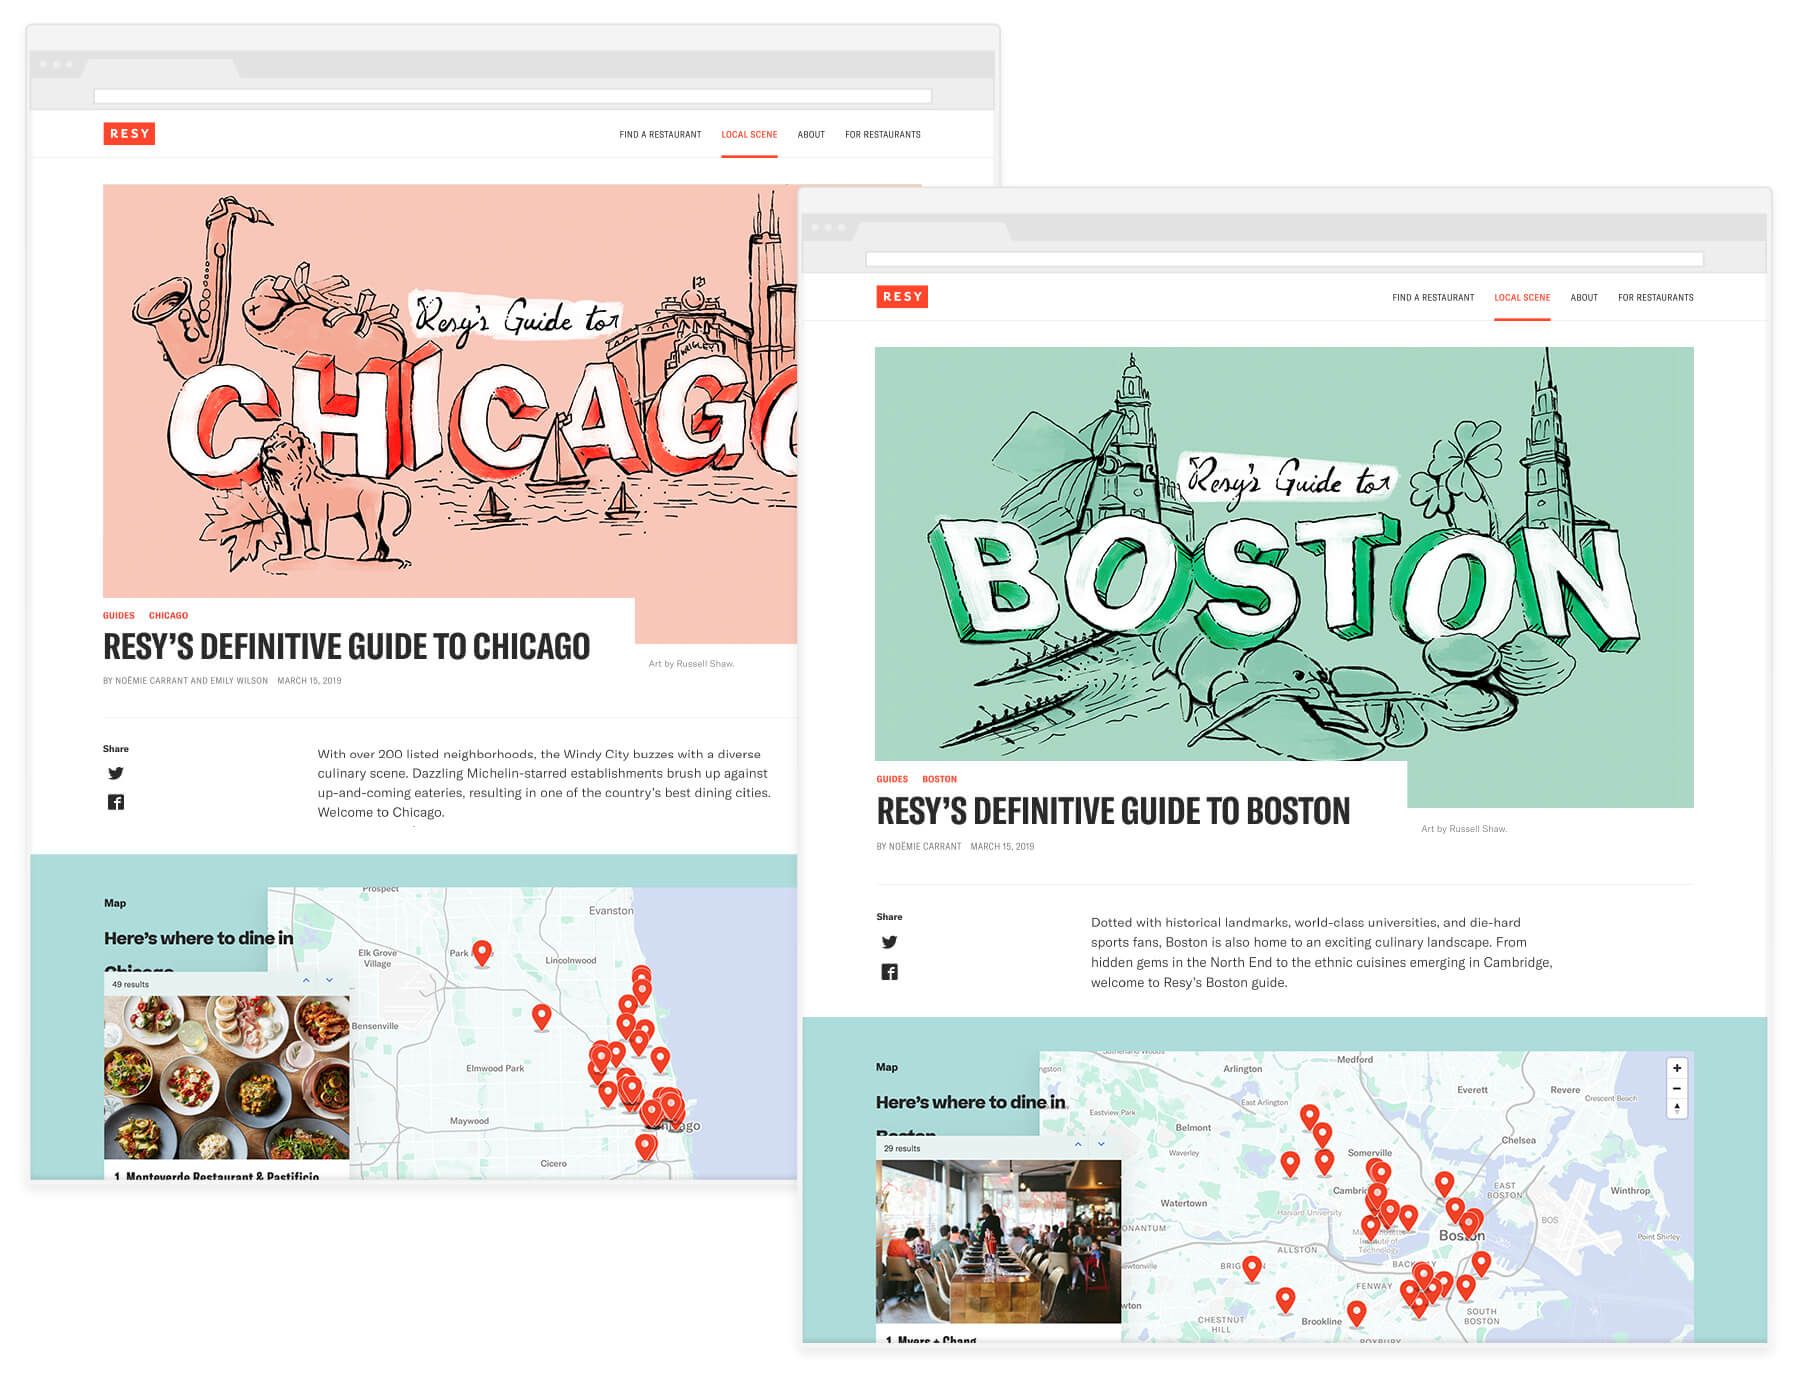 Webpage mockups of the Resy Guides to Chicago and Boston with the artwork at the top of each article